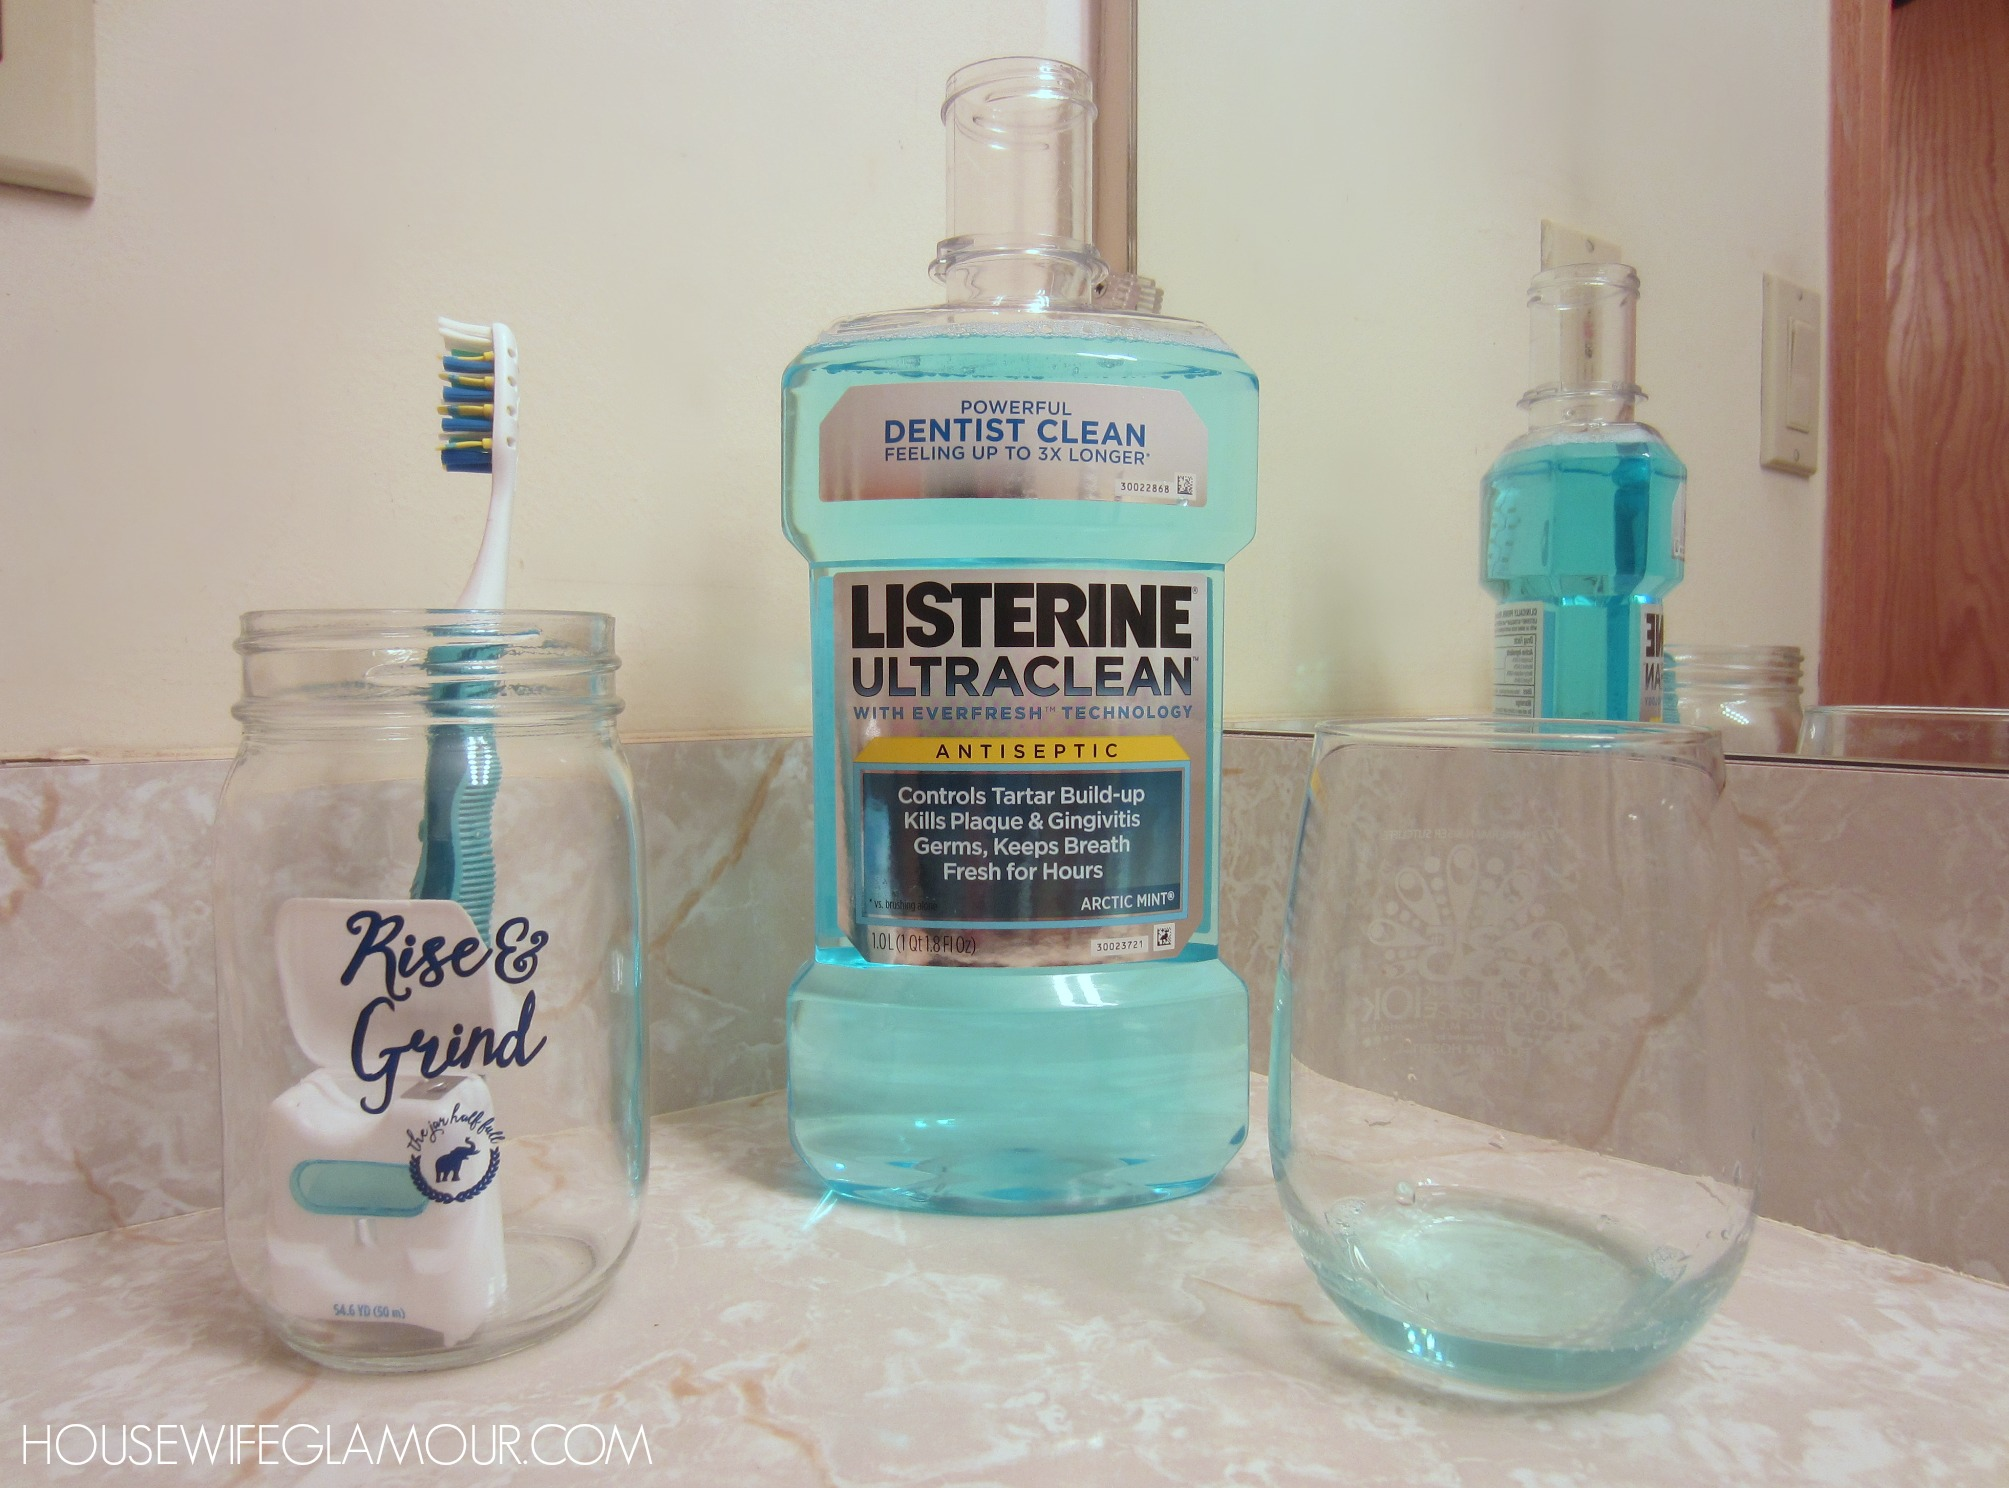 Listering Antiseptic mouthwash routine